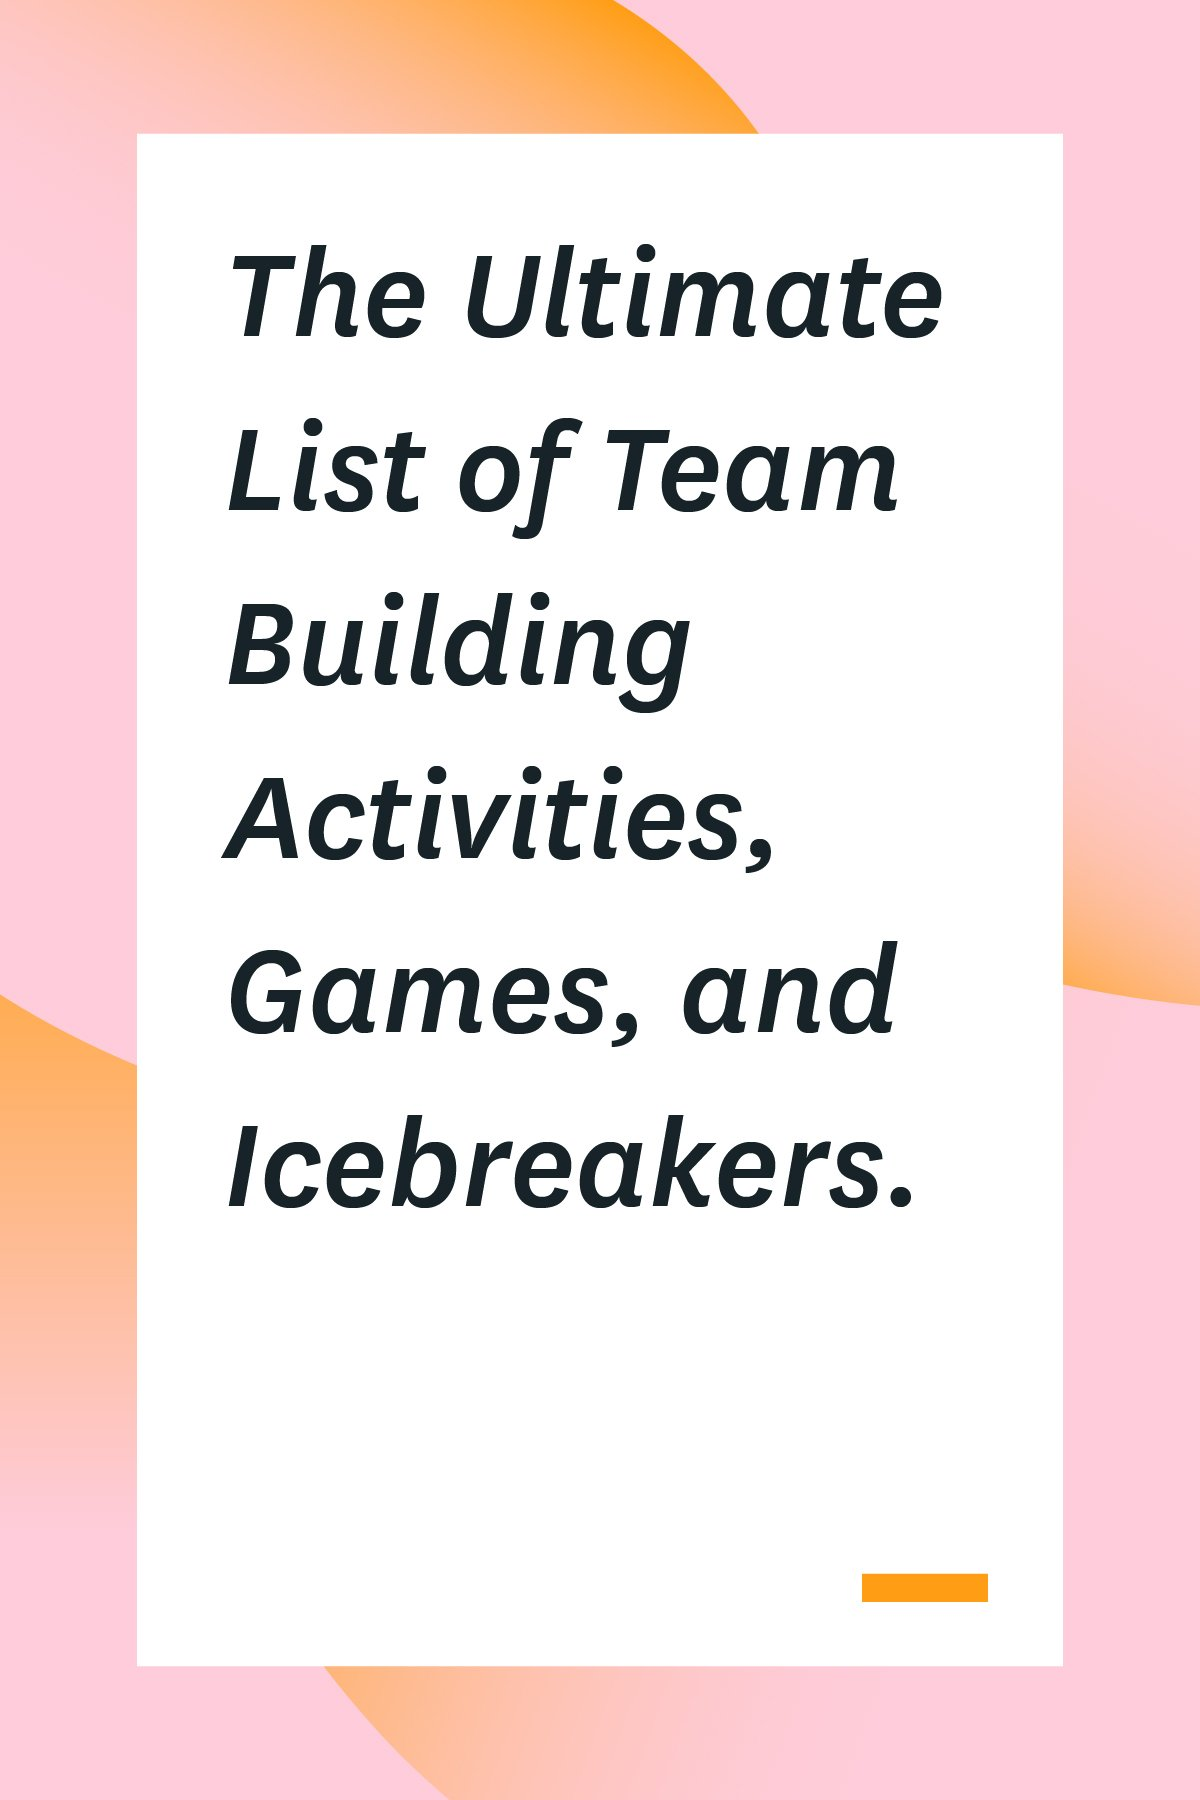 Team building games don't have to feel cheesy. In fact, team building activities and icebreakers can be the perfect way to help your team bond and problem solve better together. Here's an epic list of team building games to get you started. #teambuilding #icebreakers #remoteteam